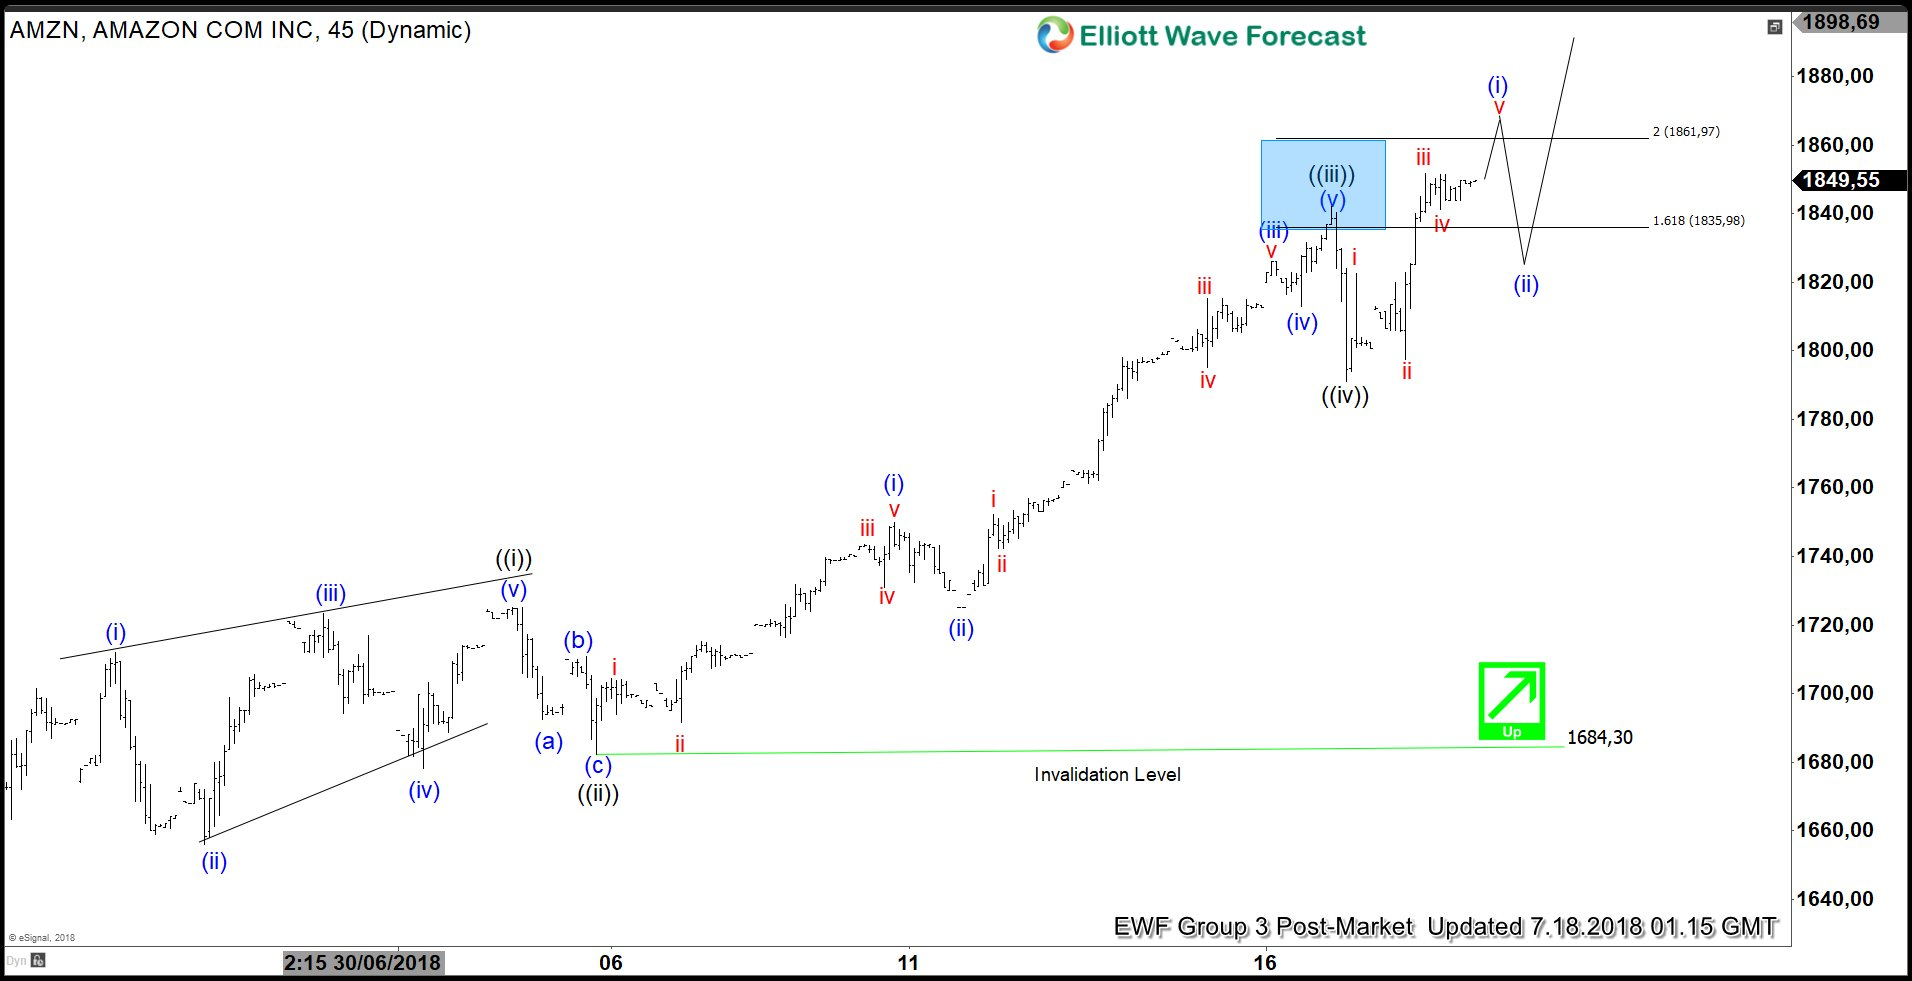 Elliott Wave Analysis: Amazon Showing Impulse Rally